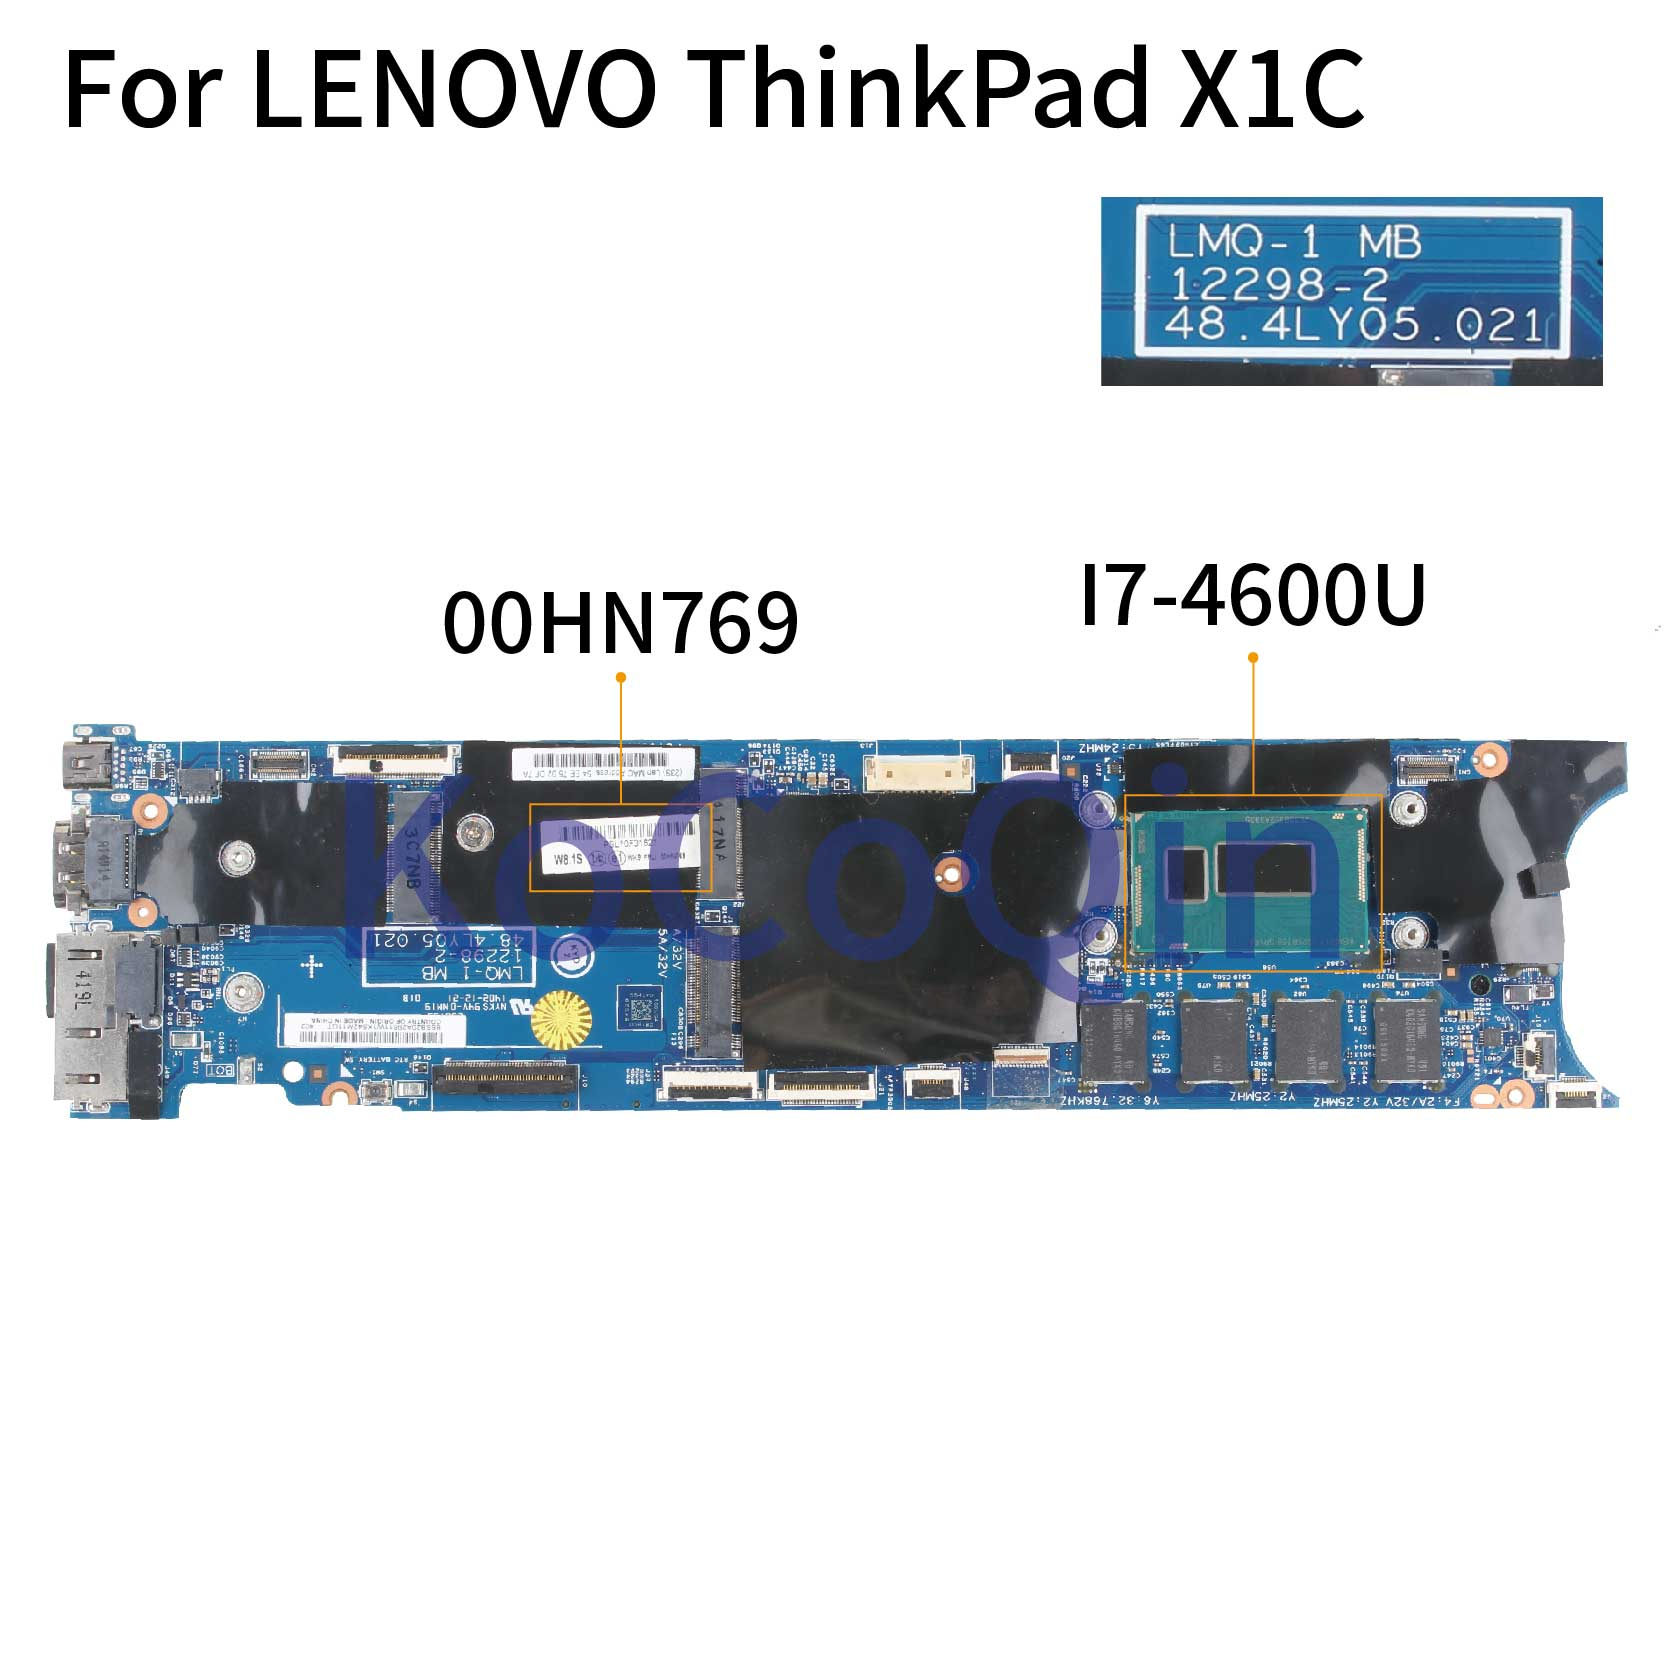 KoCoQin Laptop motherboard For LENOVO ThinkPad X1C Mainboard 12298-2 00HN769 SR1EA I7-4600U 8G